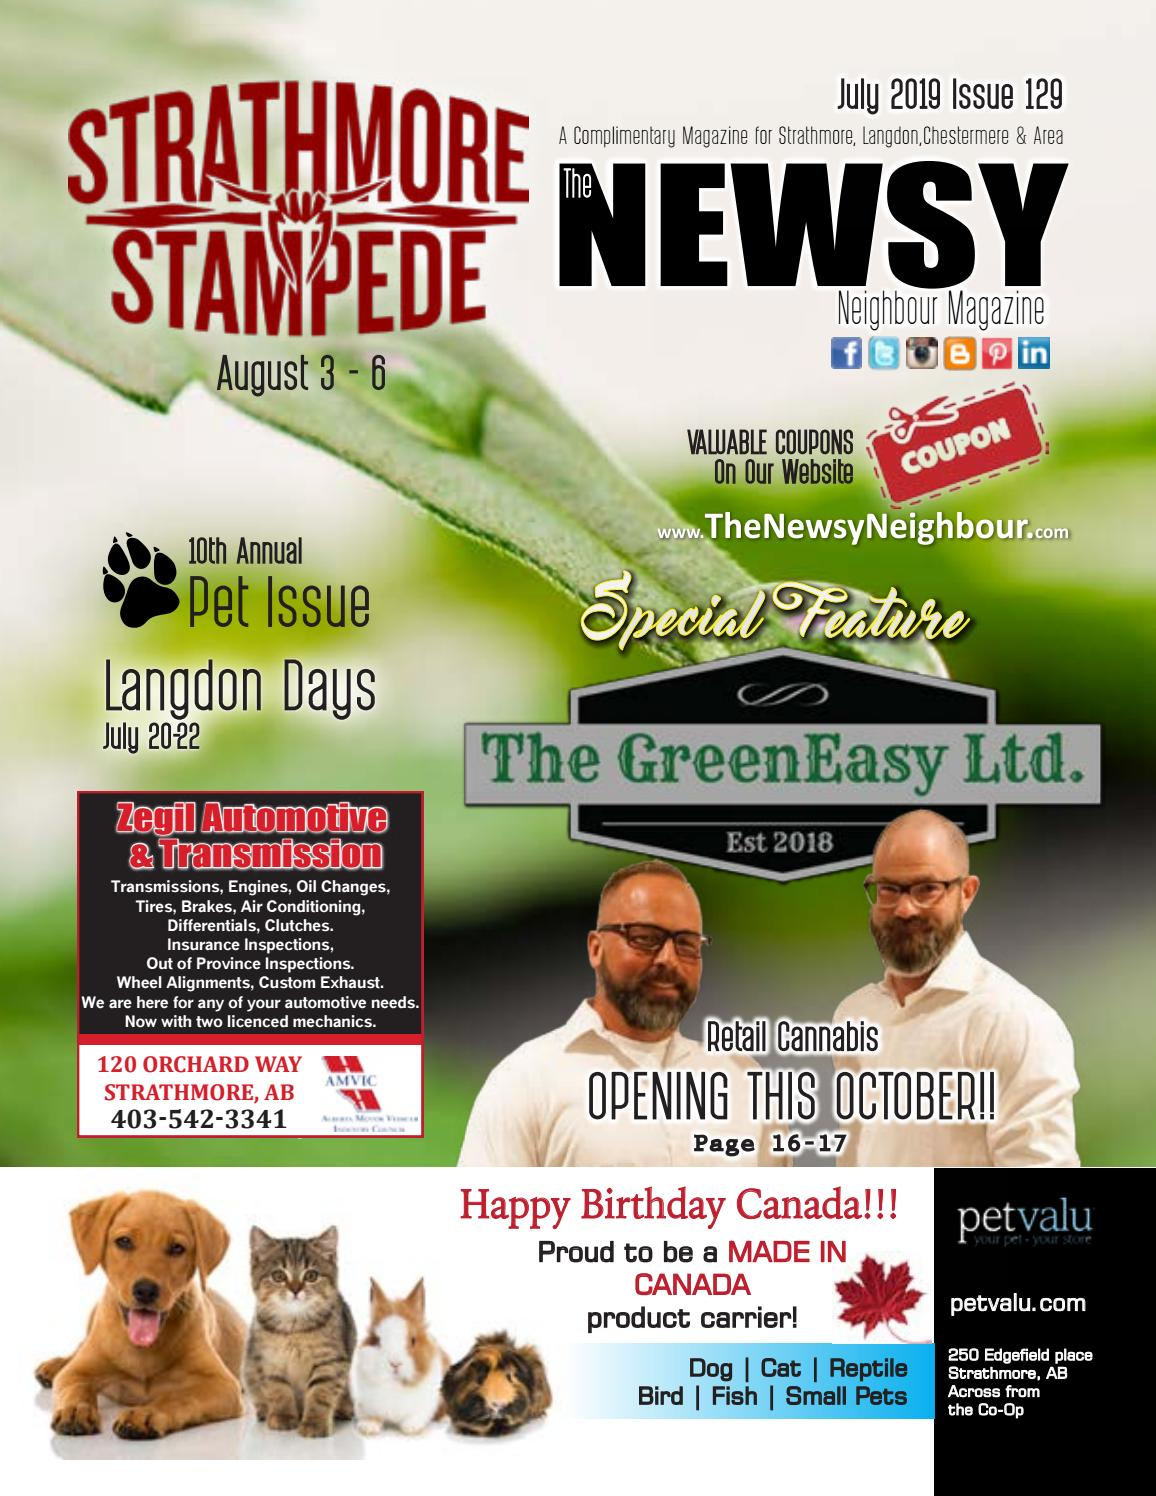 The Newsy Neighbour July Issue 129 by The Newsy Neighbor - issuu